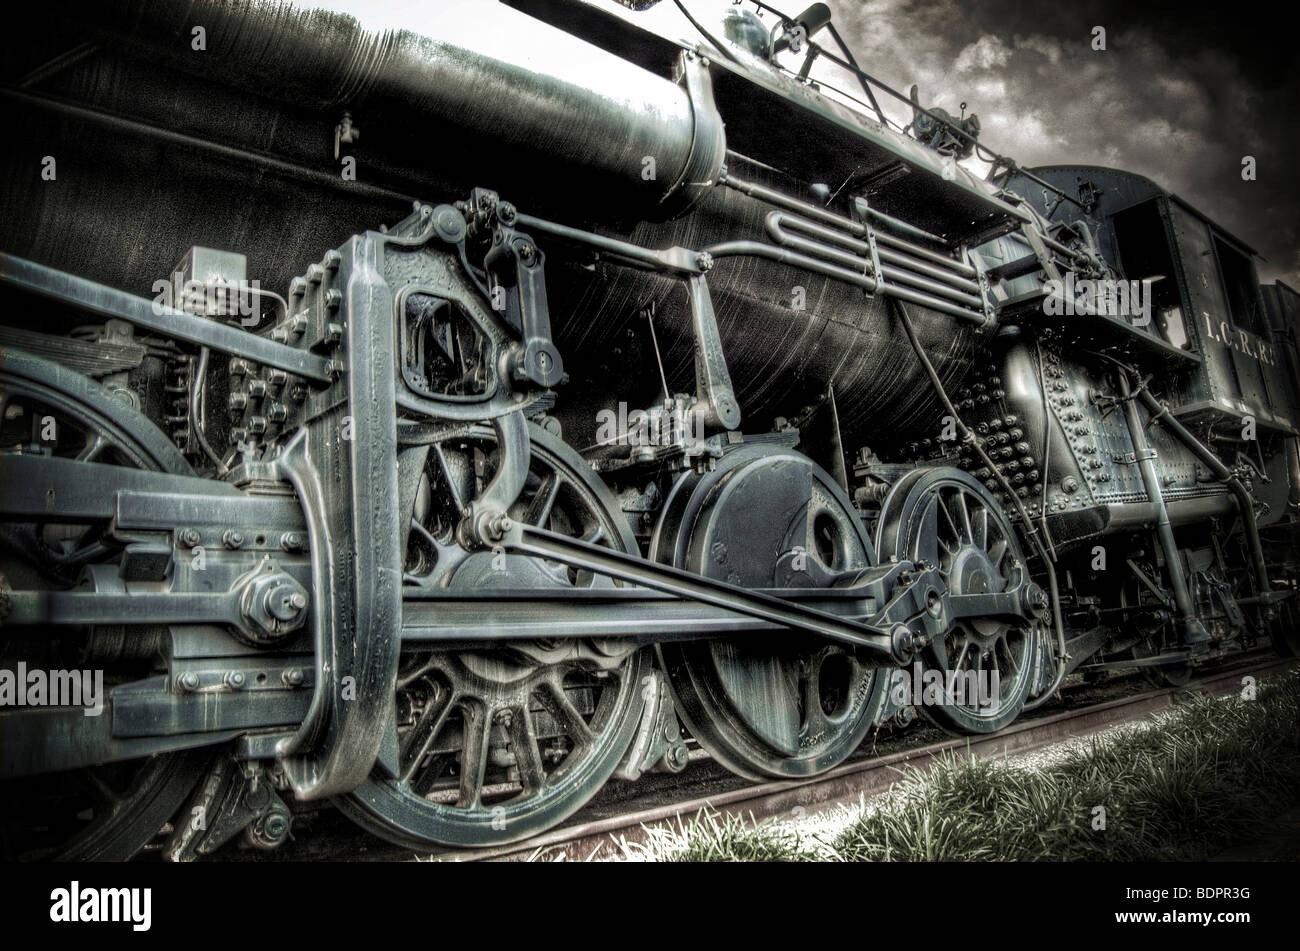 An old locomotive train - Stock Image